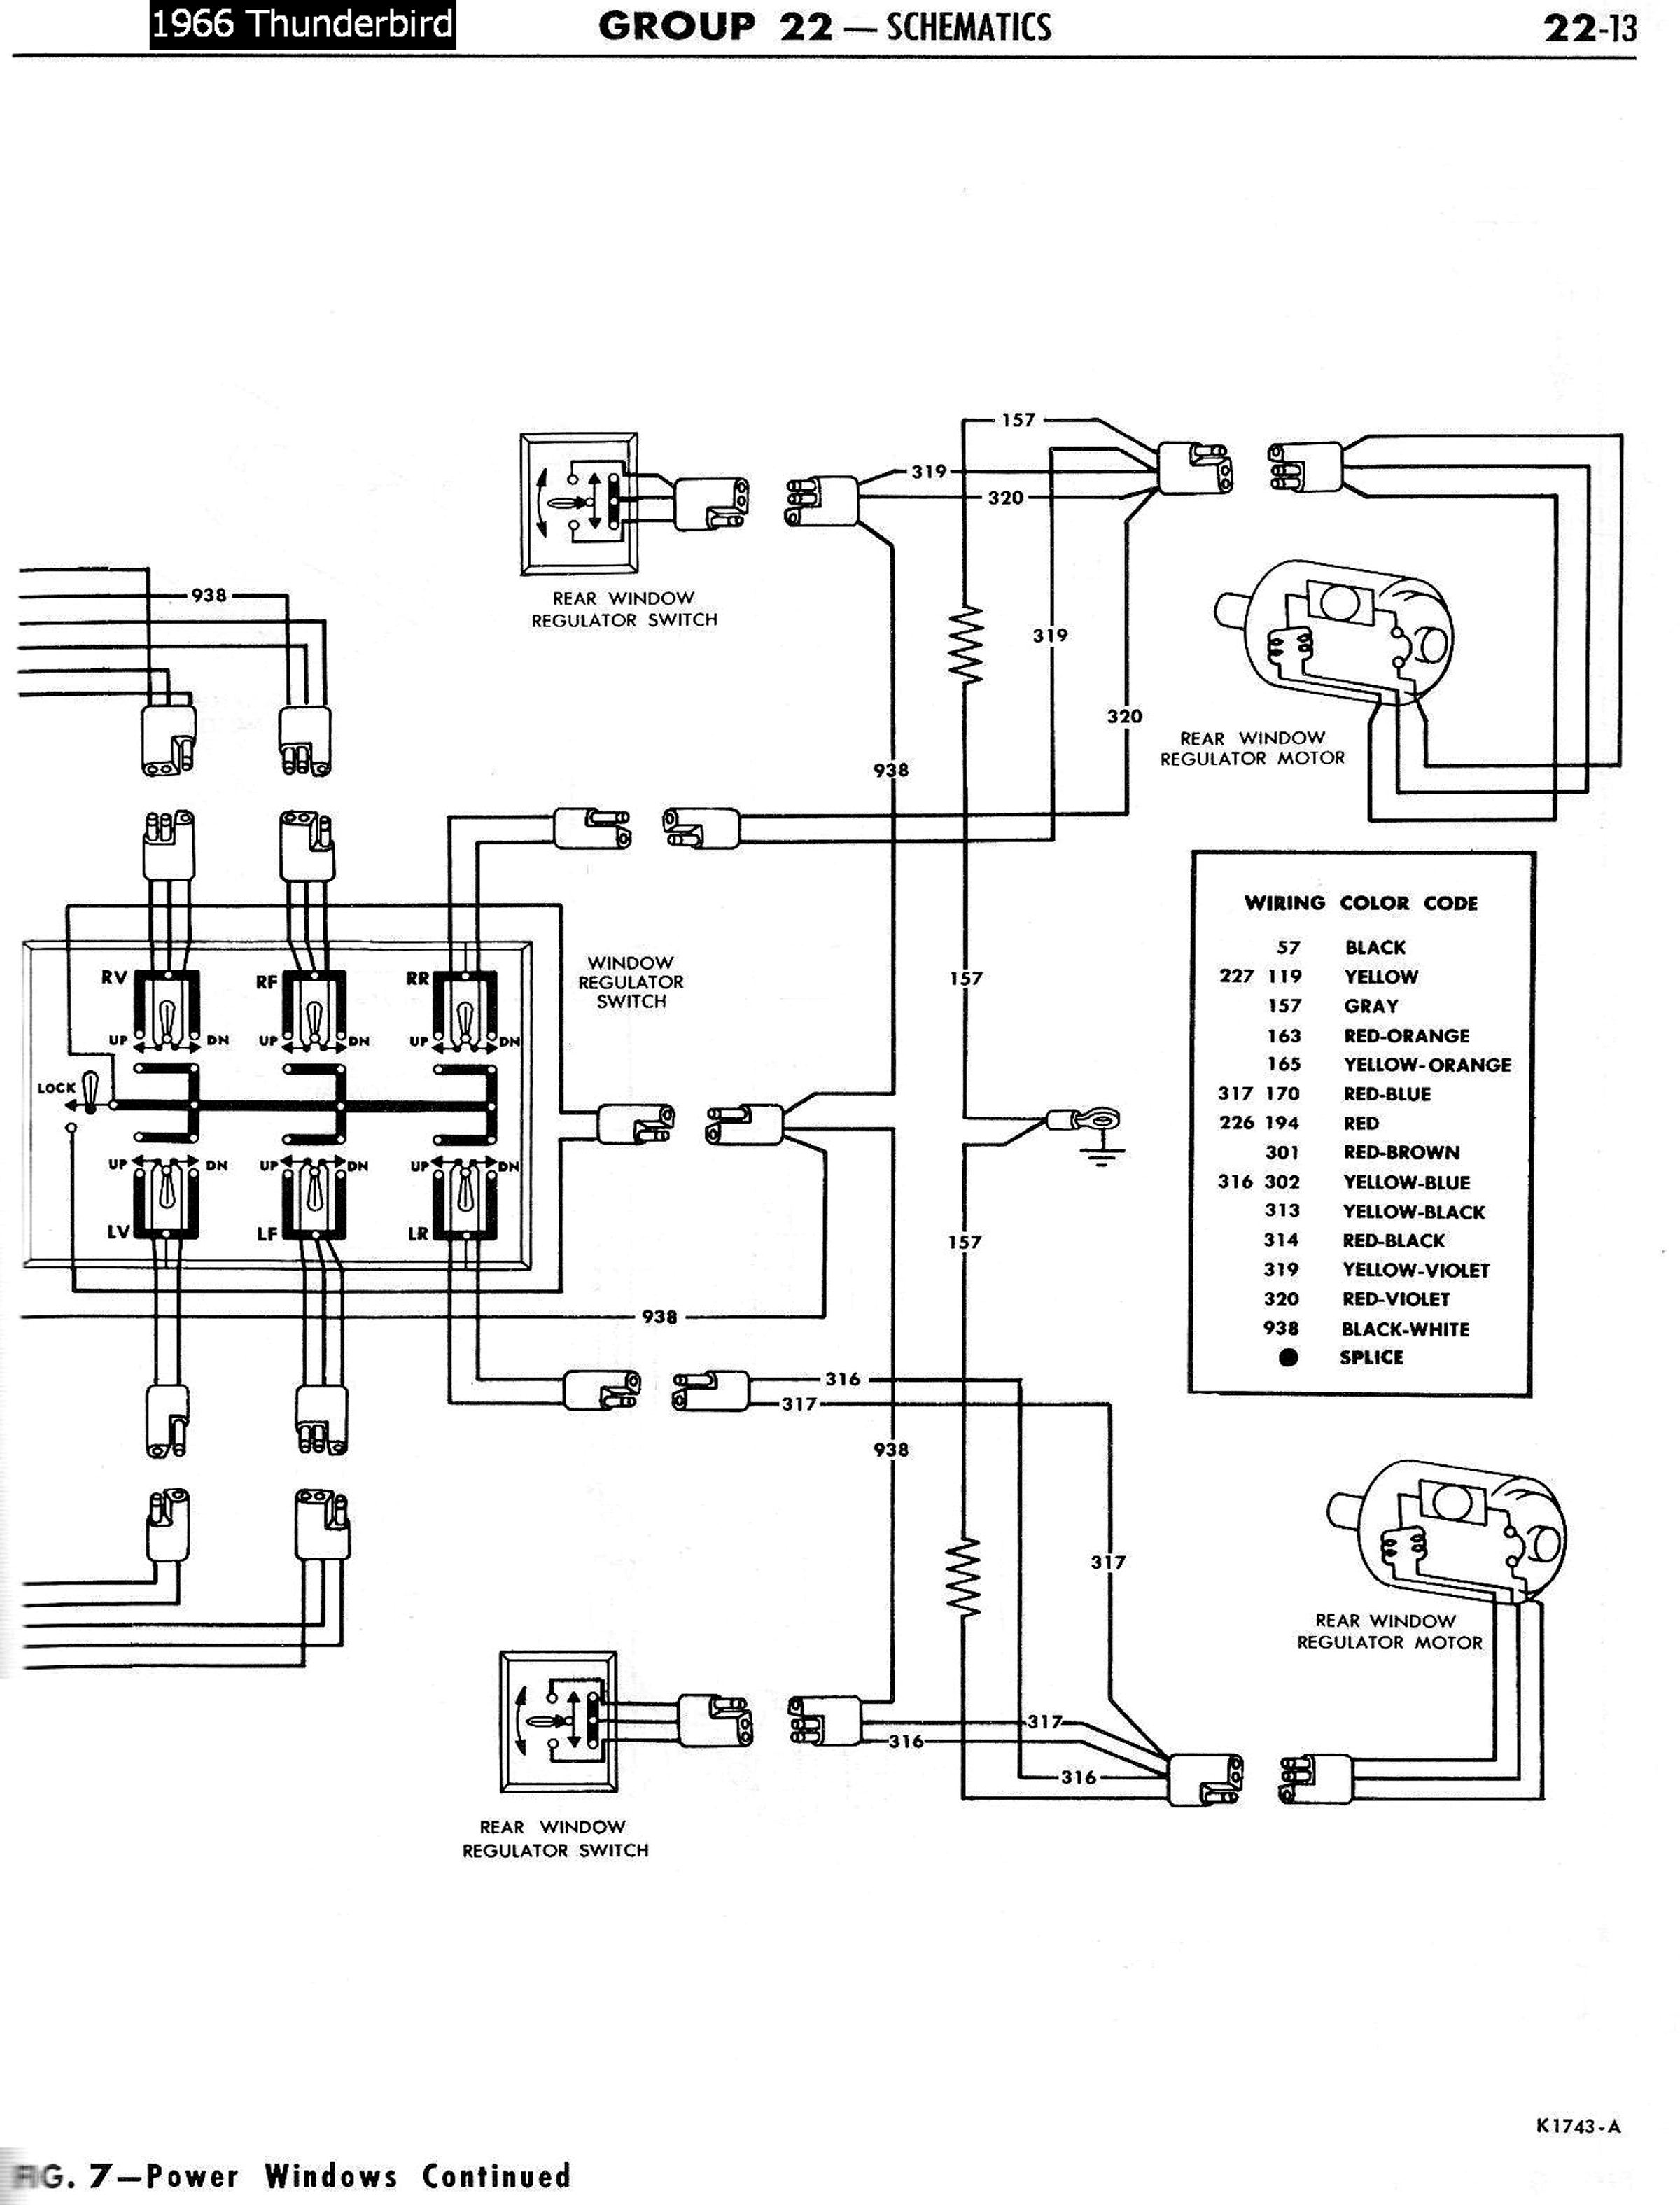 1968 ford turn signal wiring diagram design of electrical circuit1958 68  ford electrical schematics turn signal